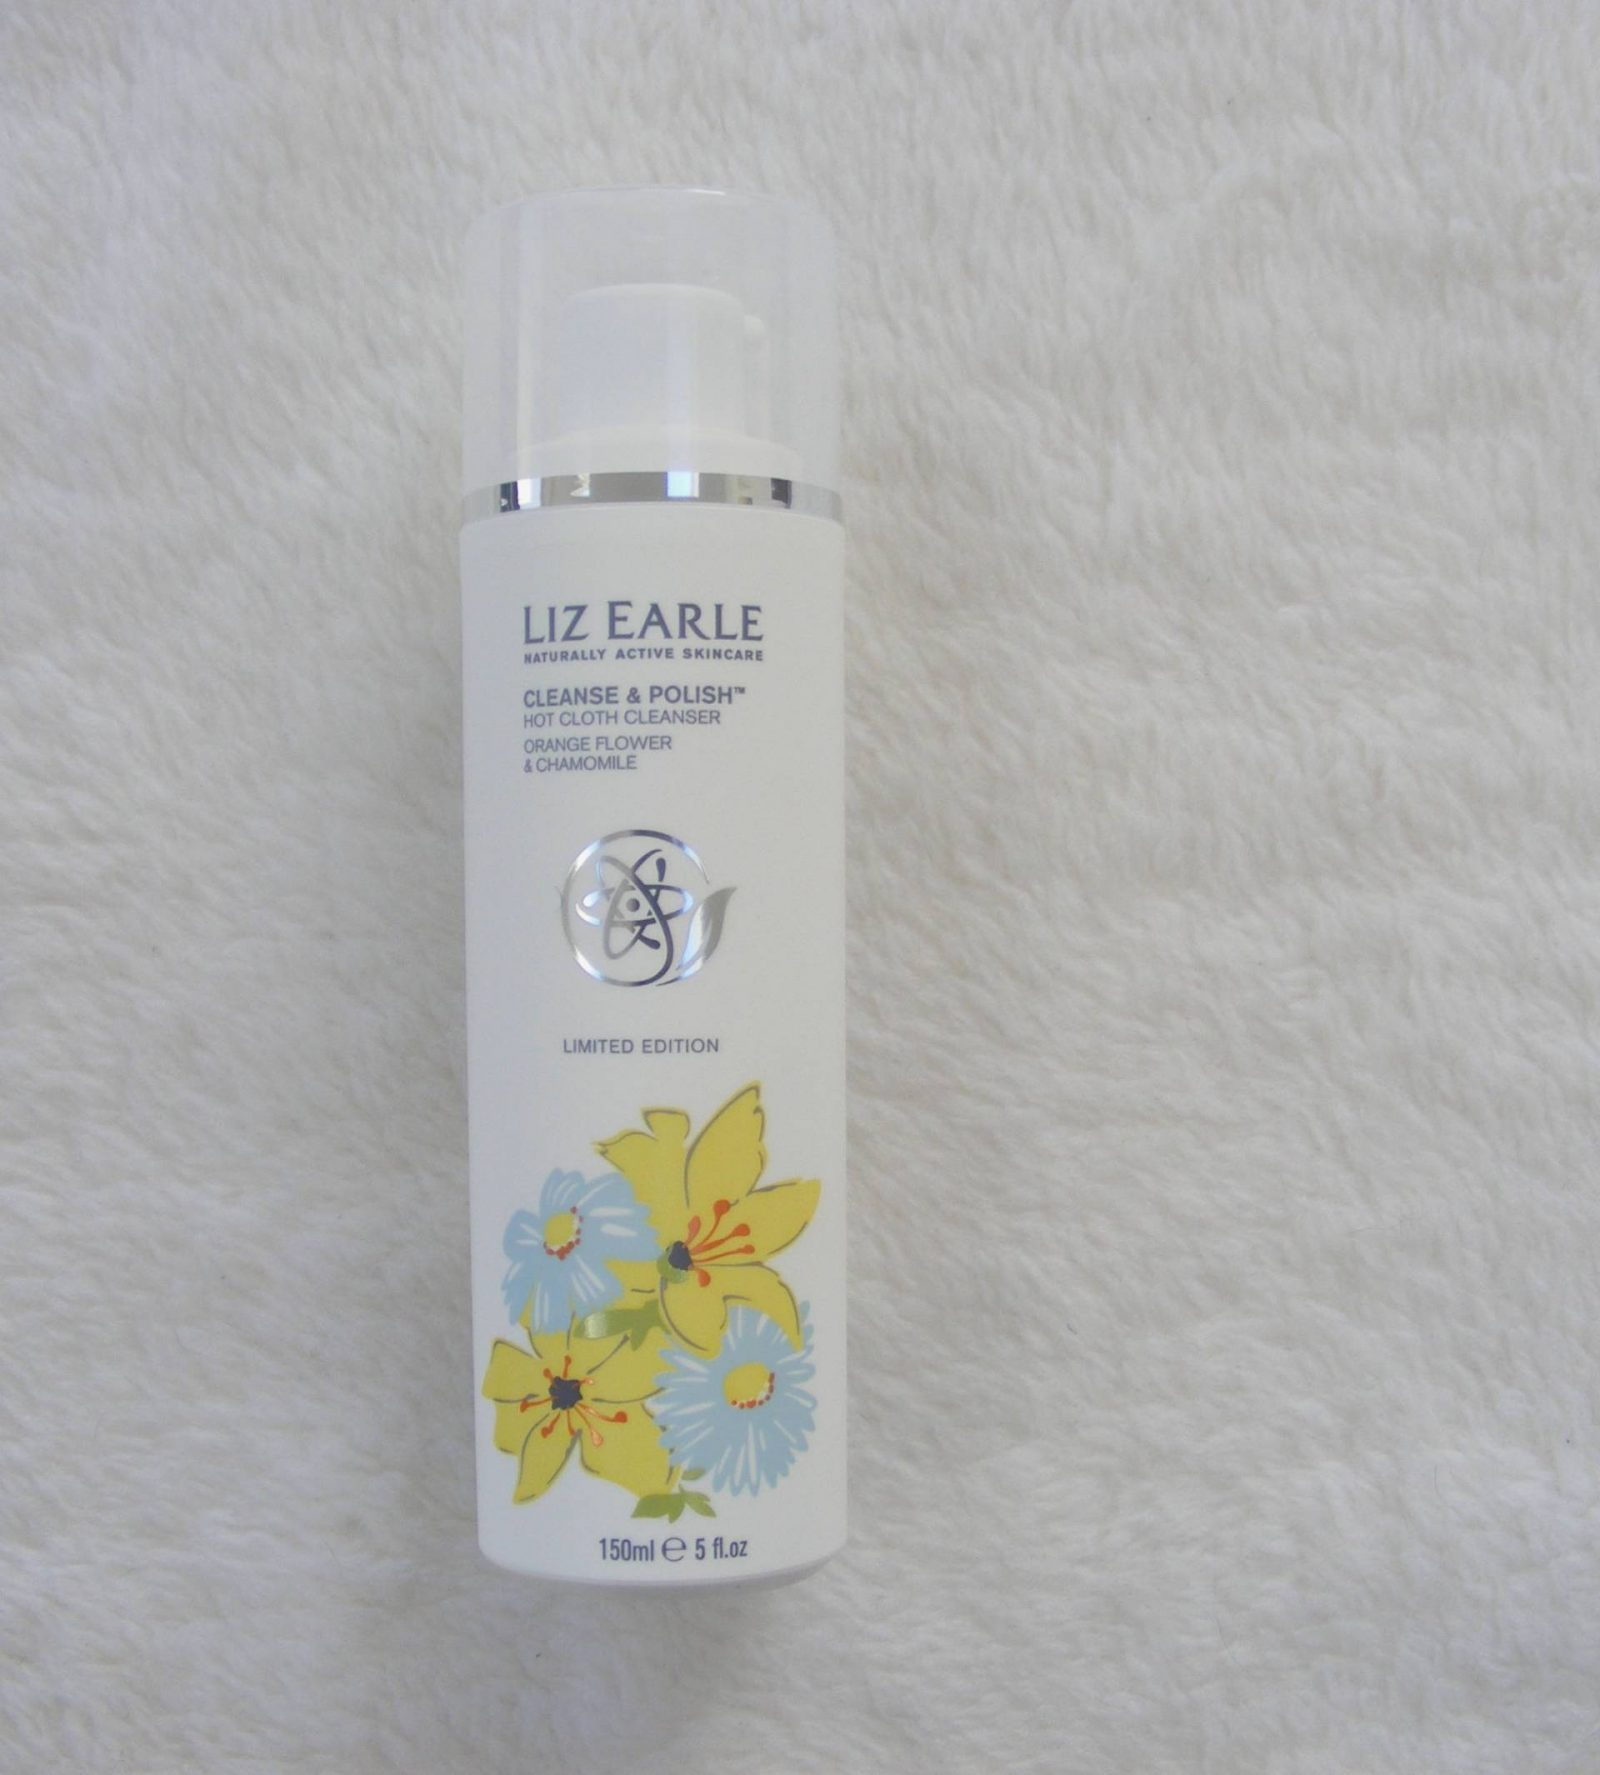 Liz Earle orange flower and chamomile cleanse and polish